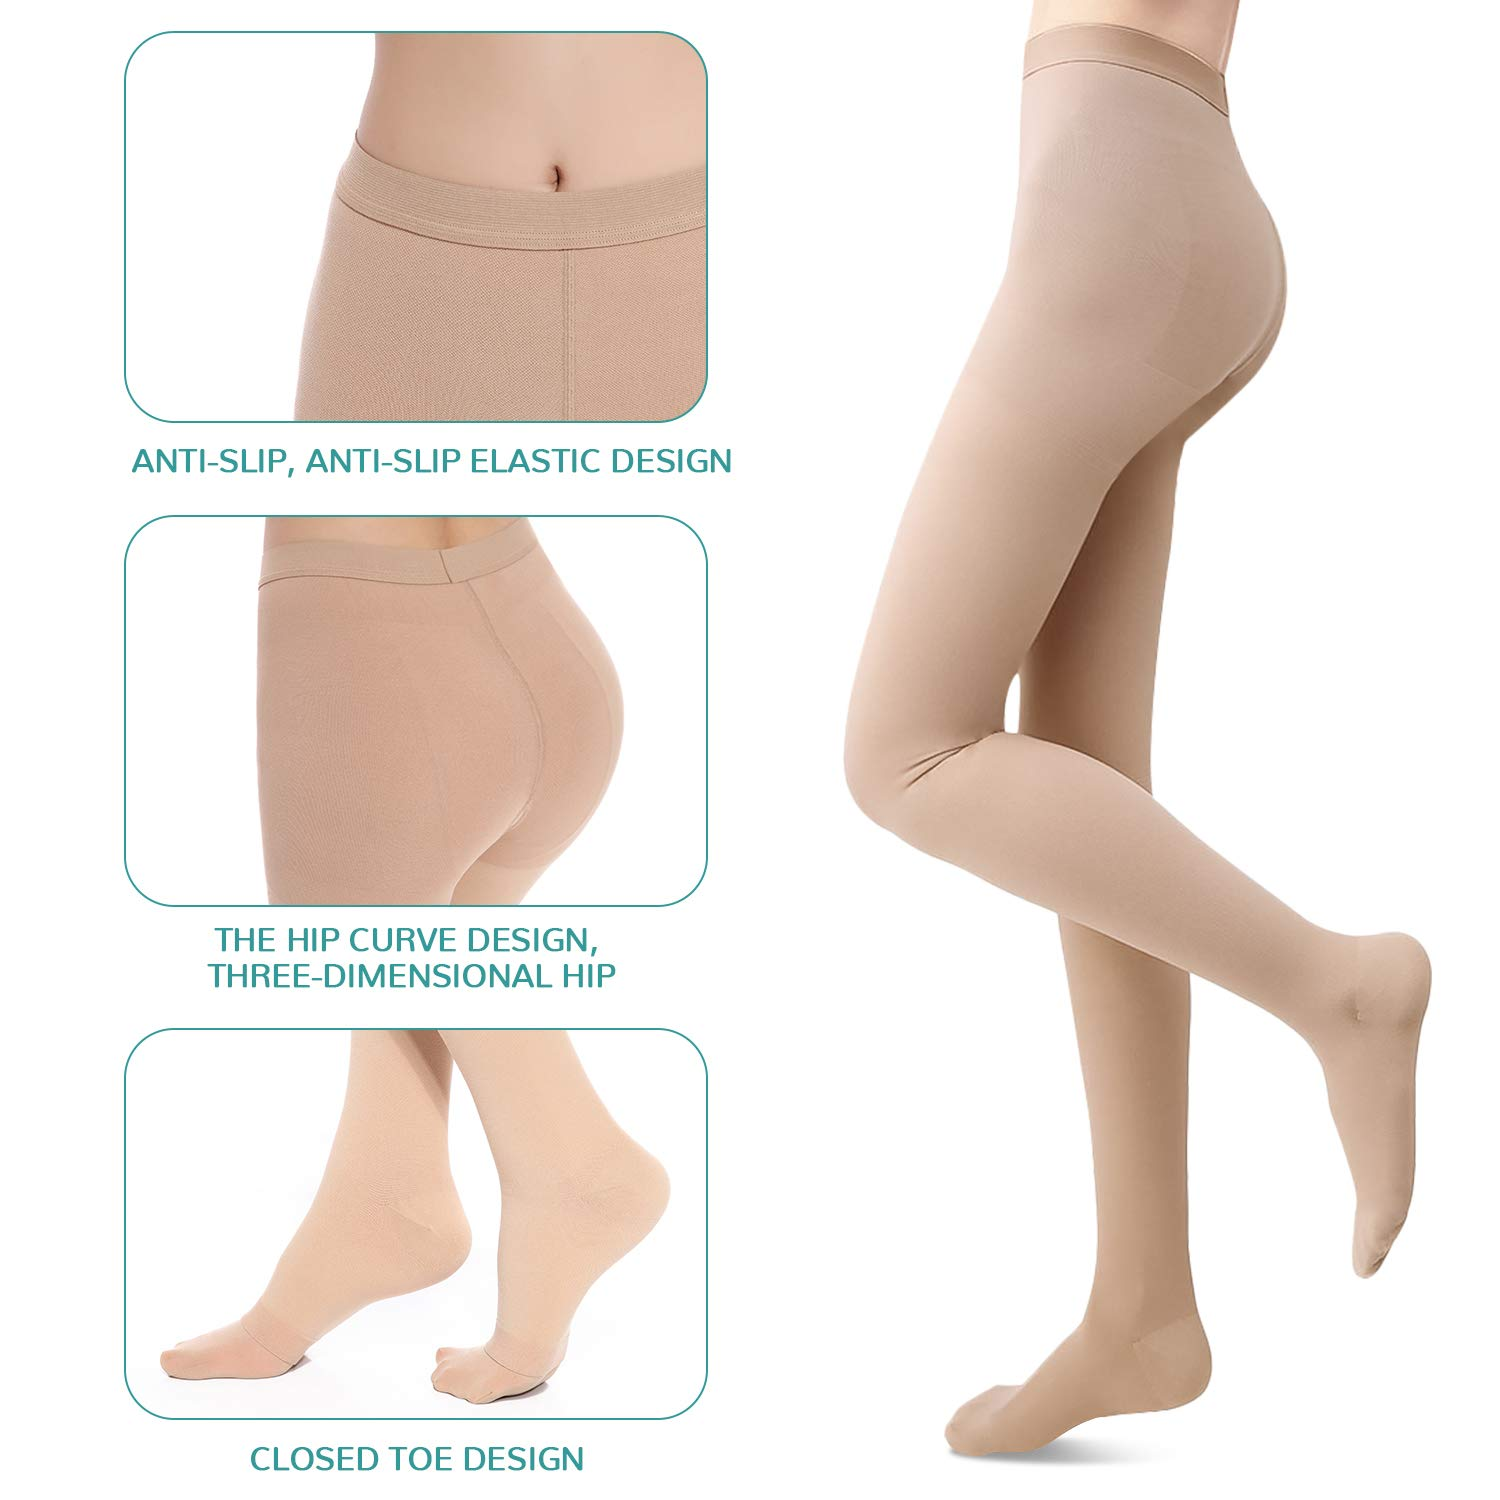 Medical Grade Compression Pantyhose (Close Toe) Women Men- Opaque Compression Stockings Pantyhose Support Patyhose Firm Graduated Support 20-30mmHg Helps Relieve Symptoms of Mild Varicose Veins by SKYFOXE (Image #4)